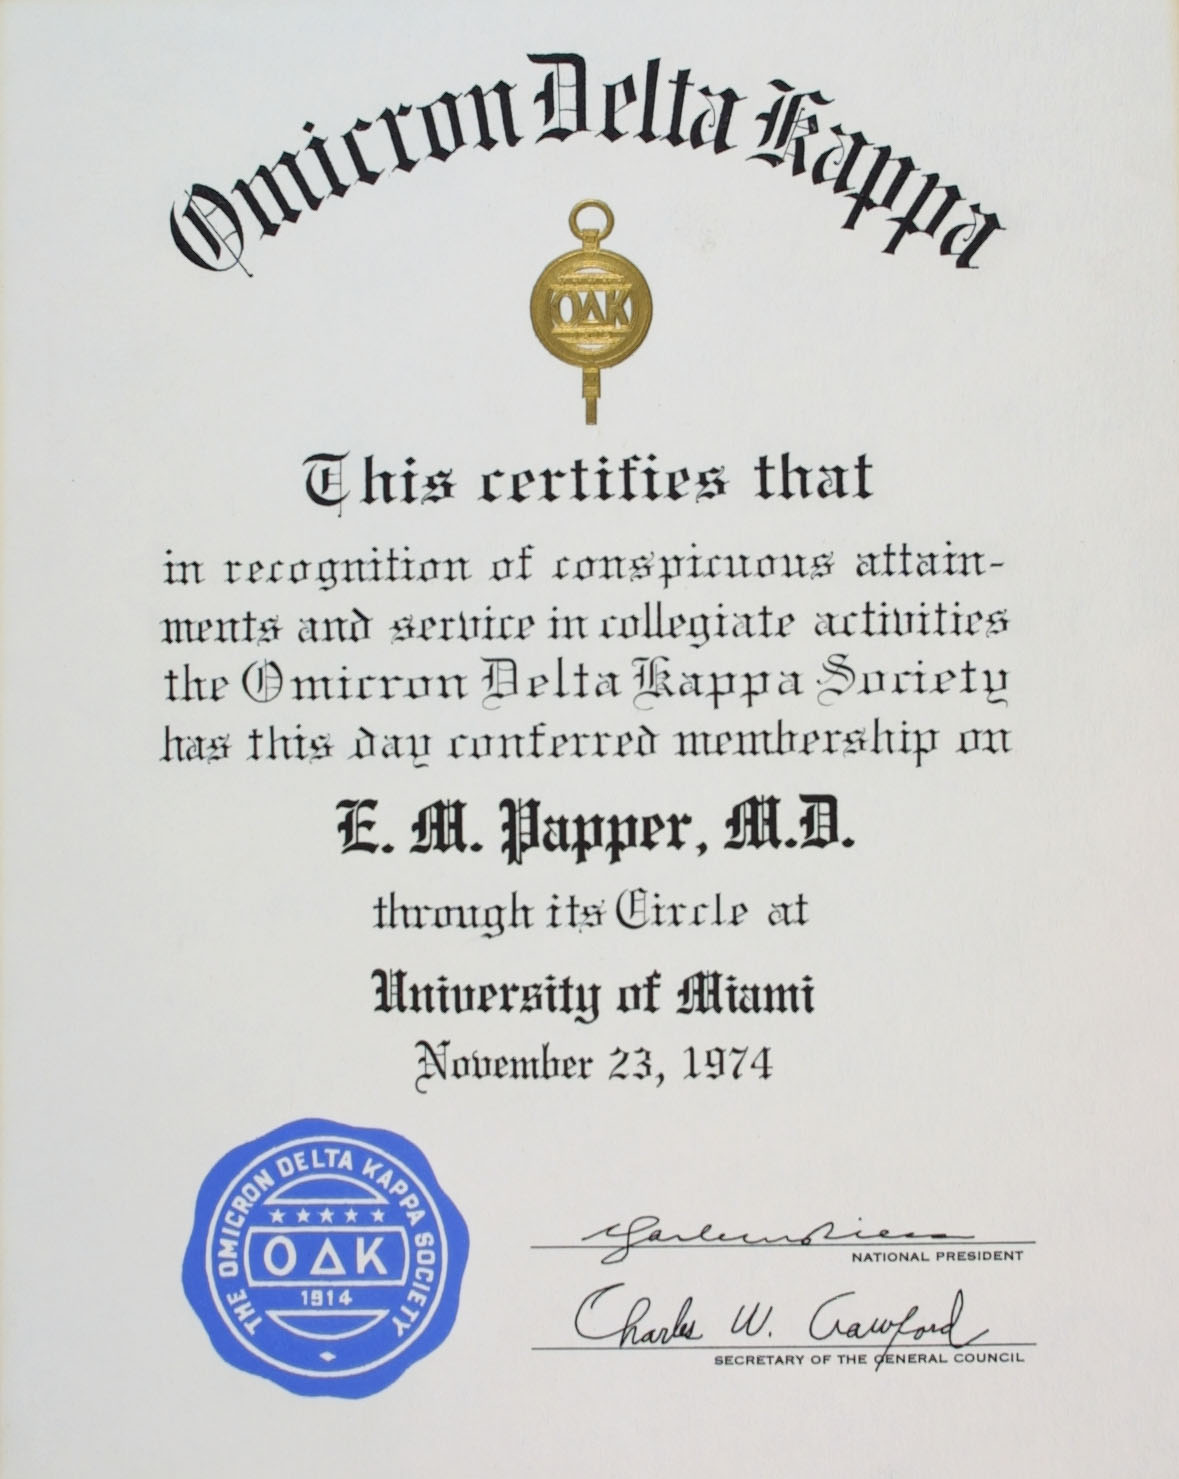 Emanuel m papper md phd honors awards 1974 yelopaper Image collections